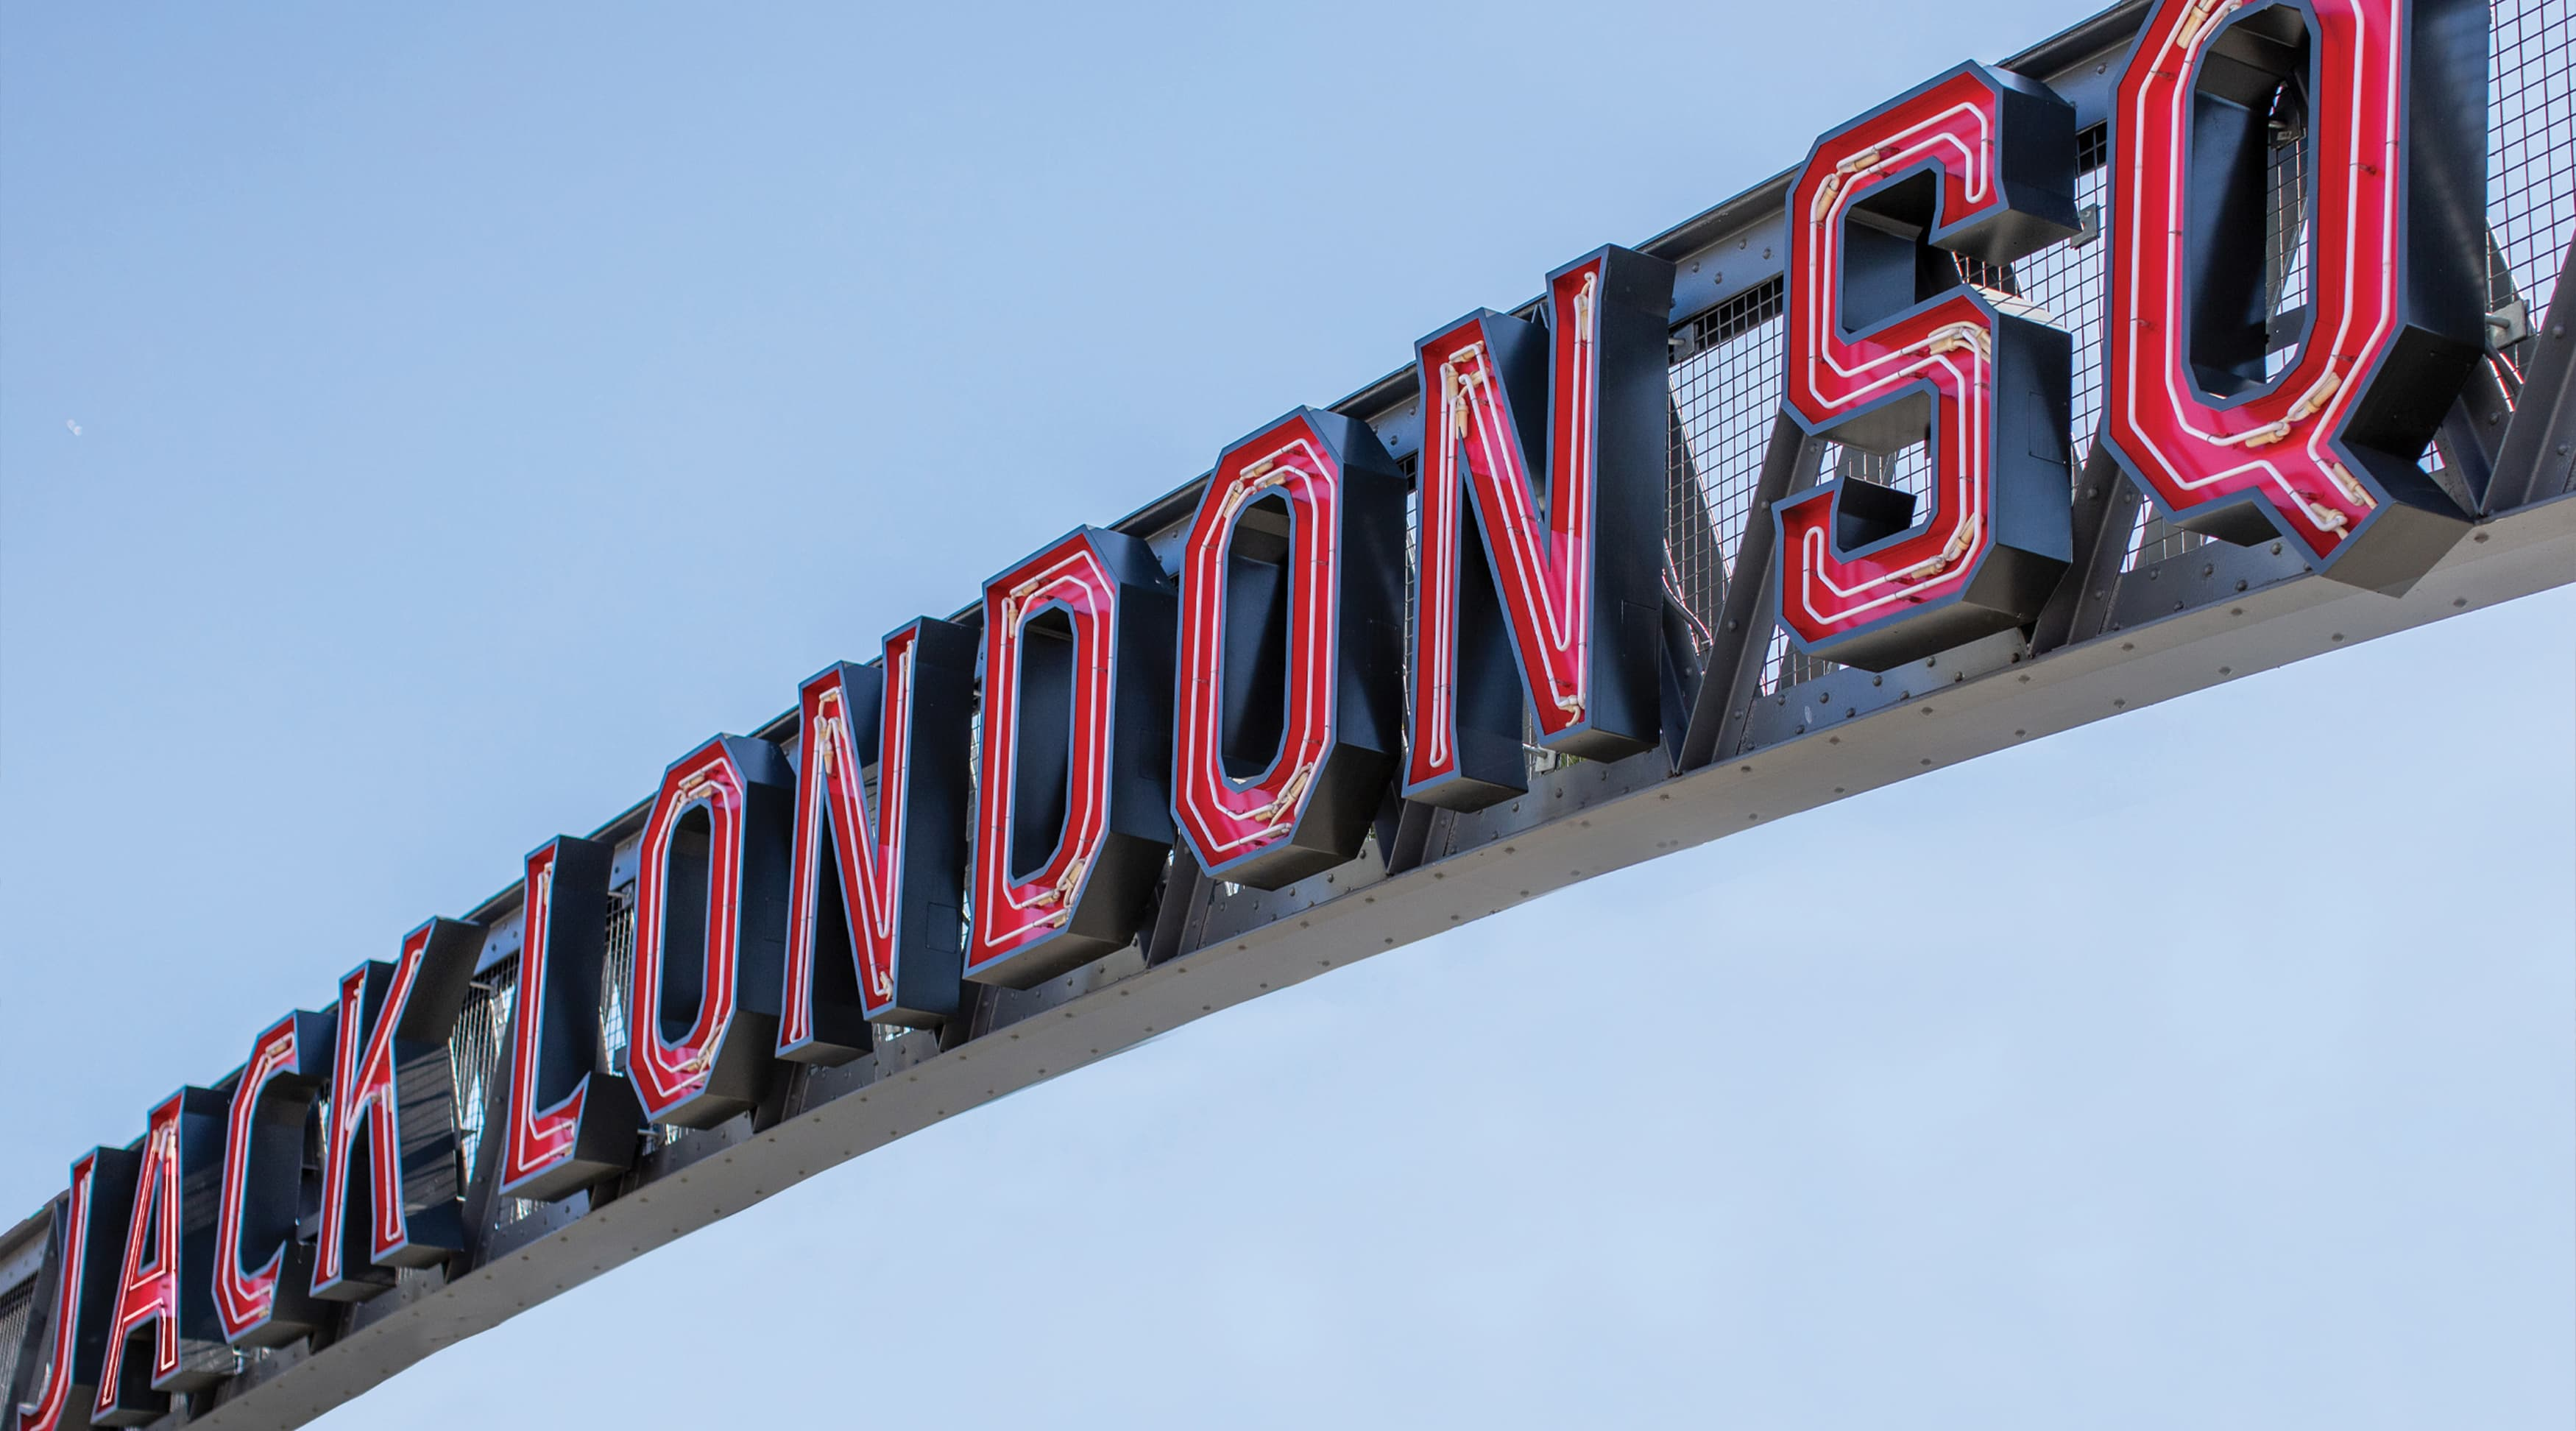 Jack London Square open face channel letters and exposed neon mounted on gateway element